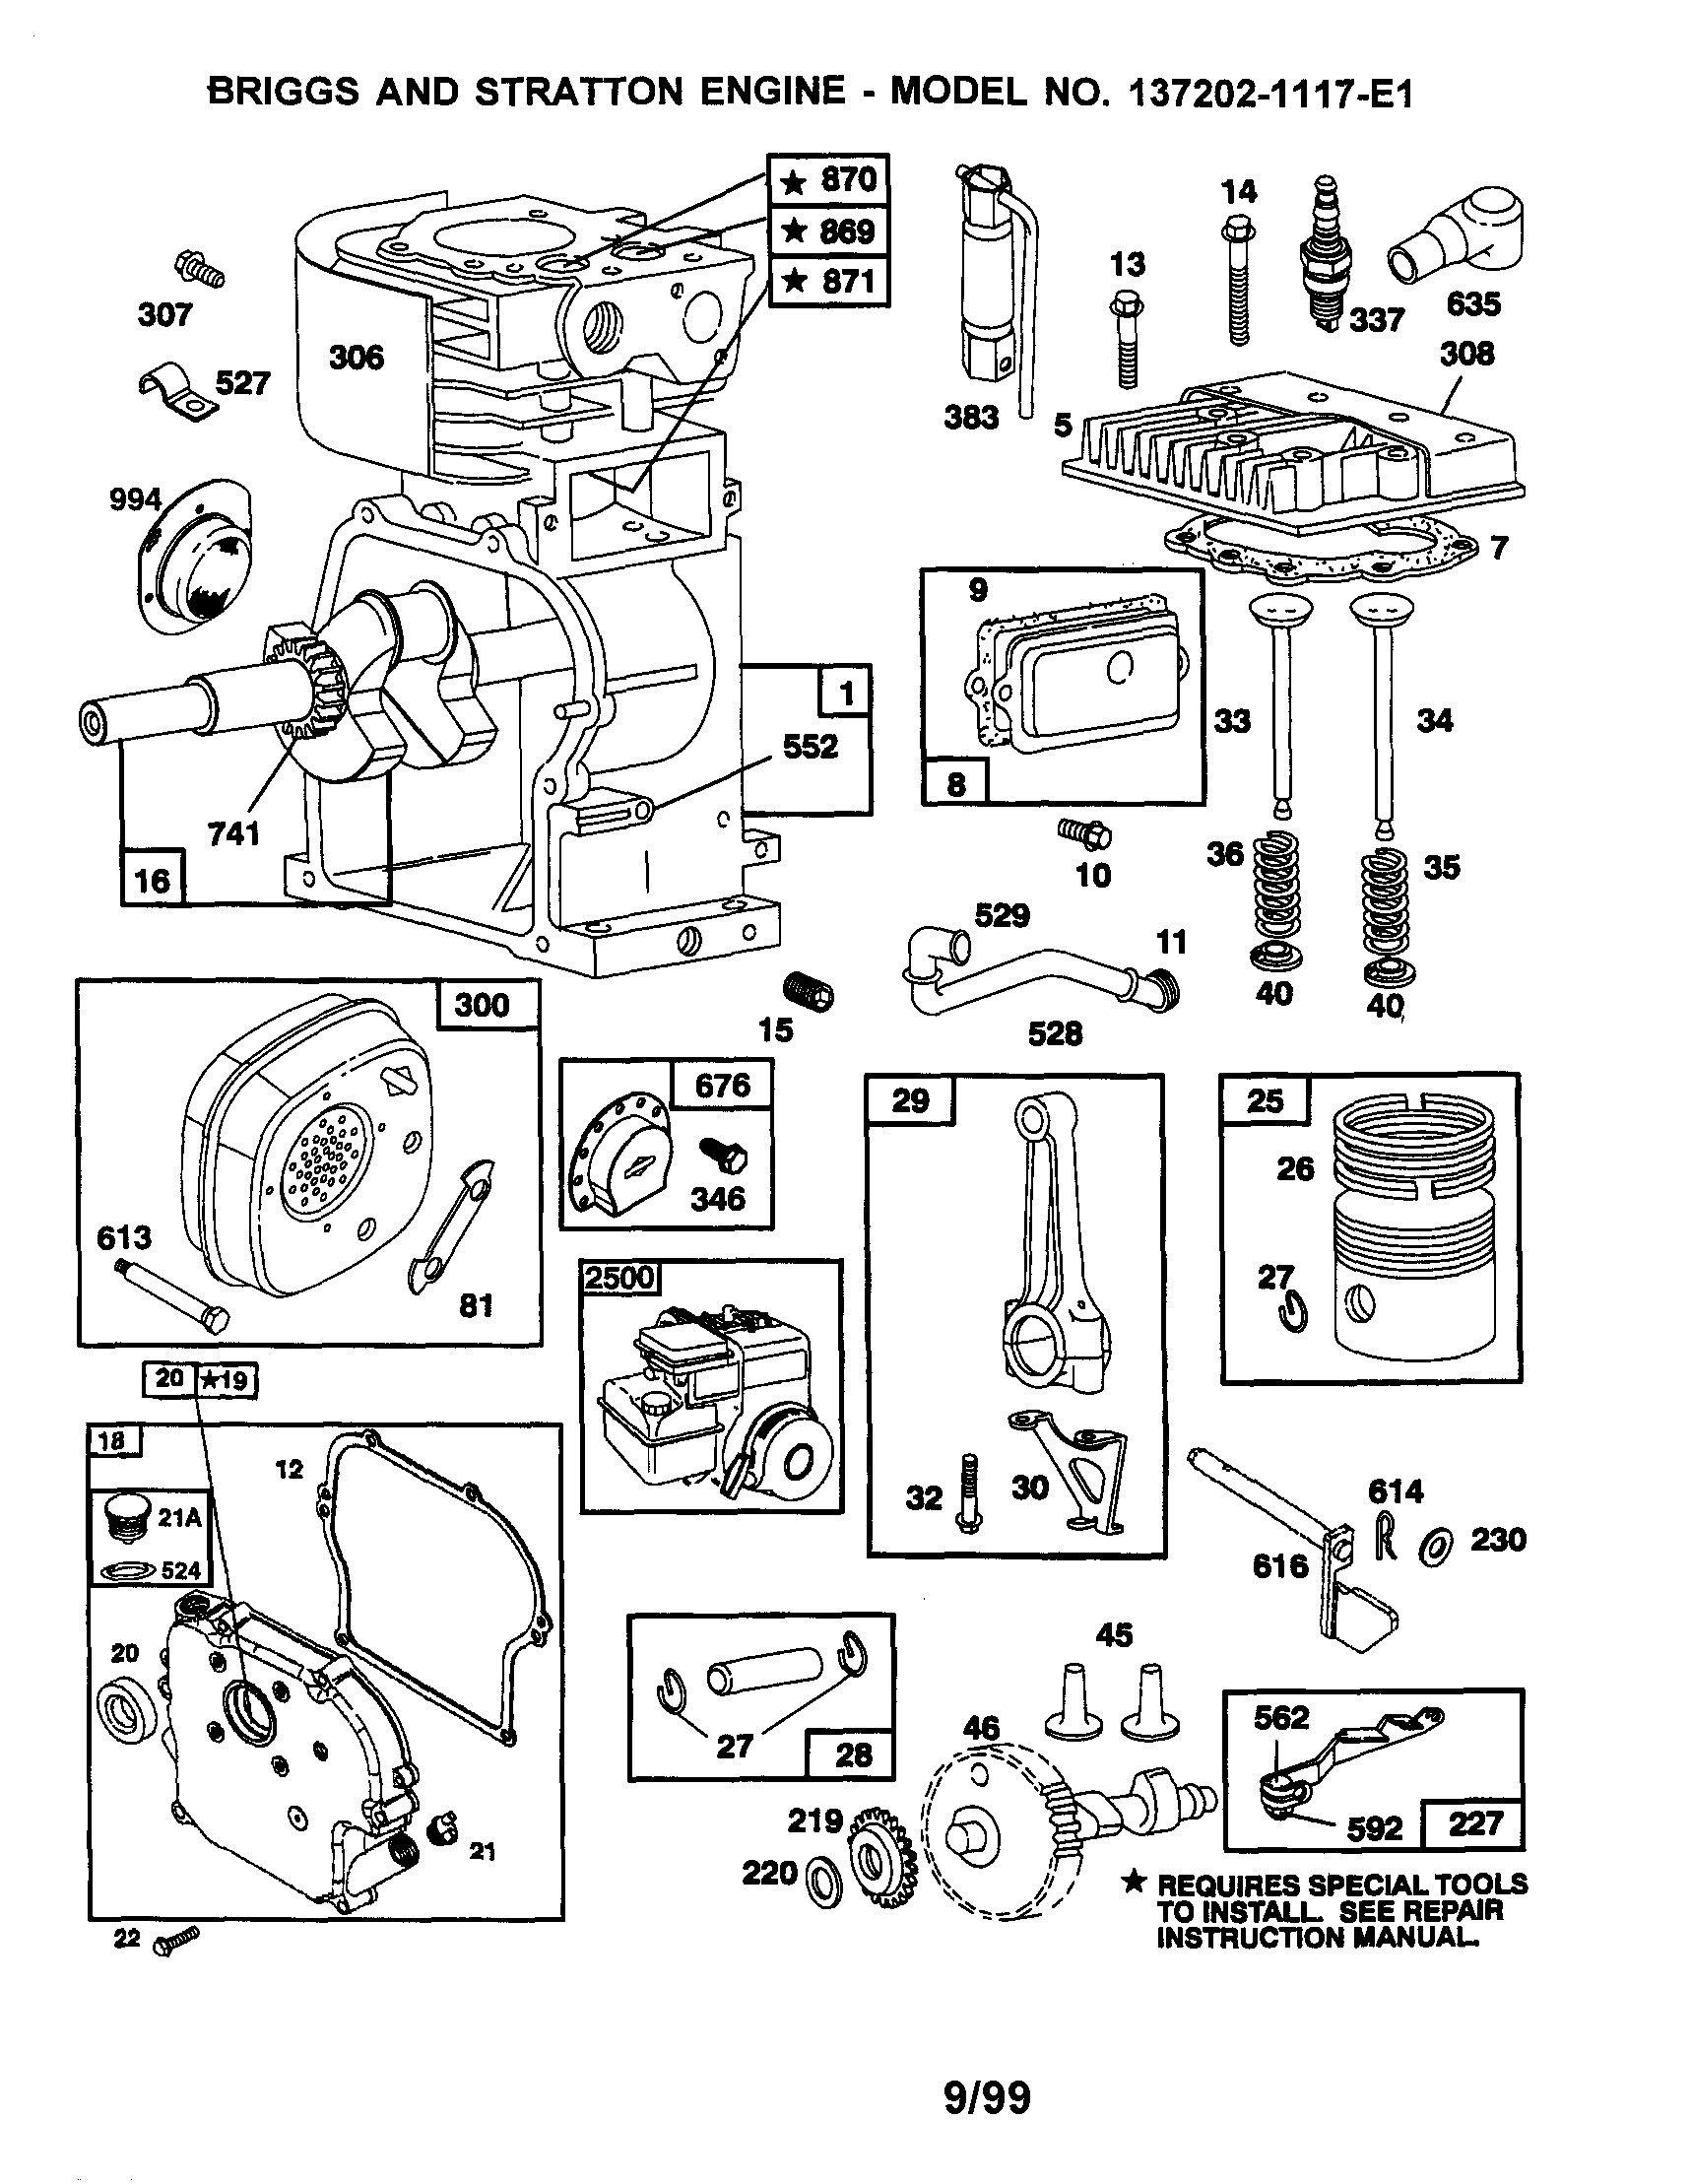 Best    Briggs    And    Stratton    550 Series Carburetor    Diagram     EC84     Rocmunity